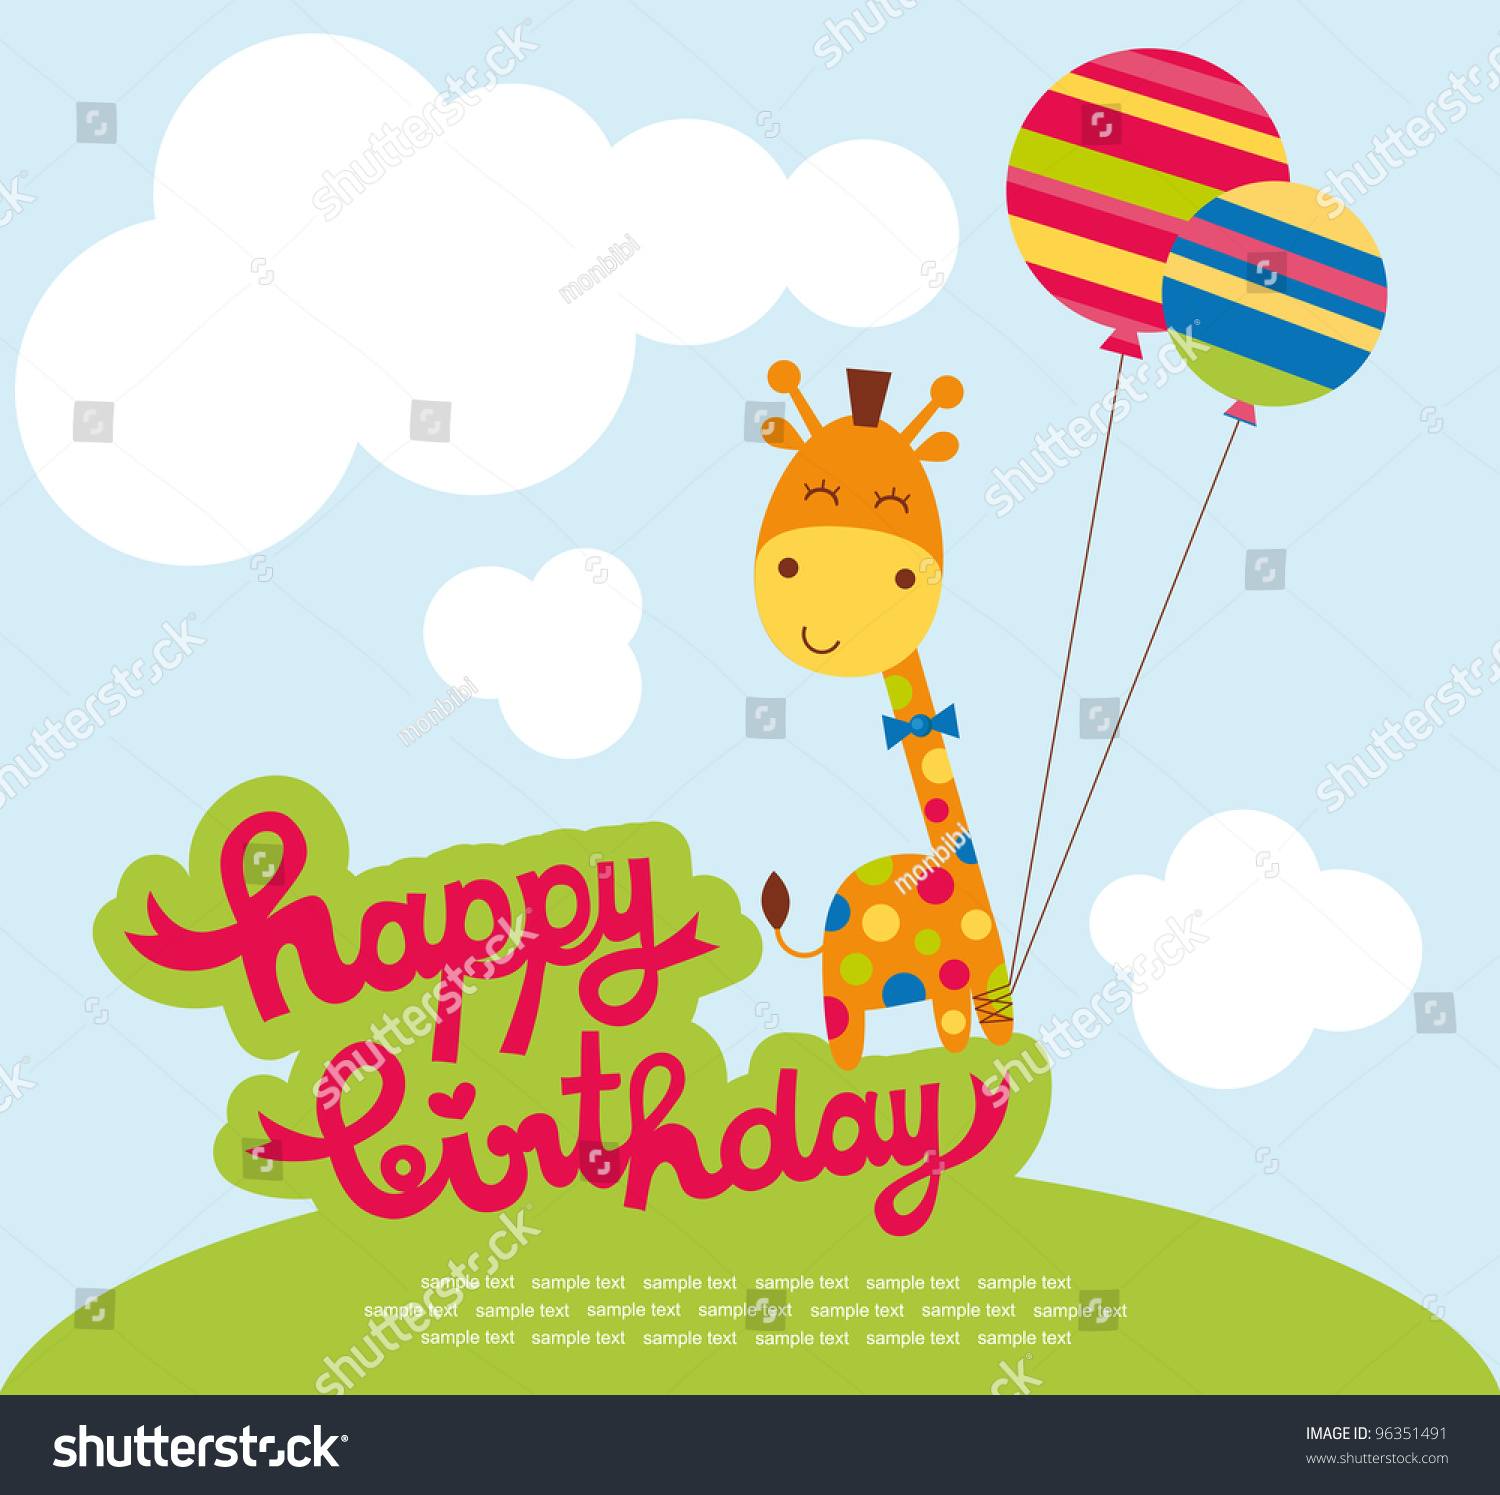 Cute Happy Birthday Card Nice Giraffe Vector 96351491 – Cute Happy Birthday Cards for Friends